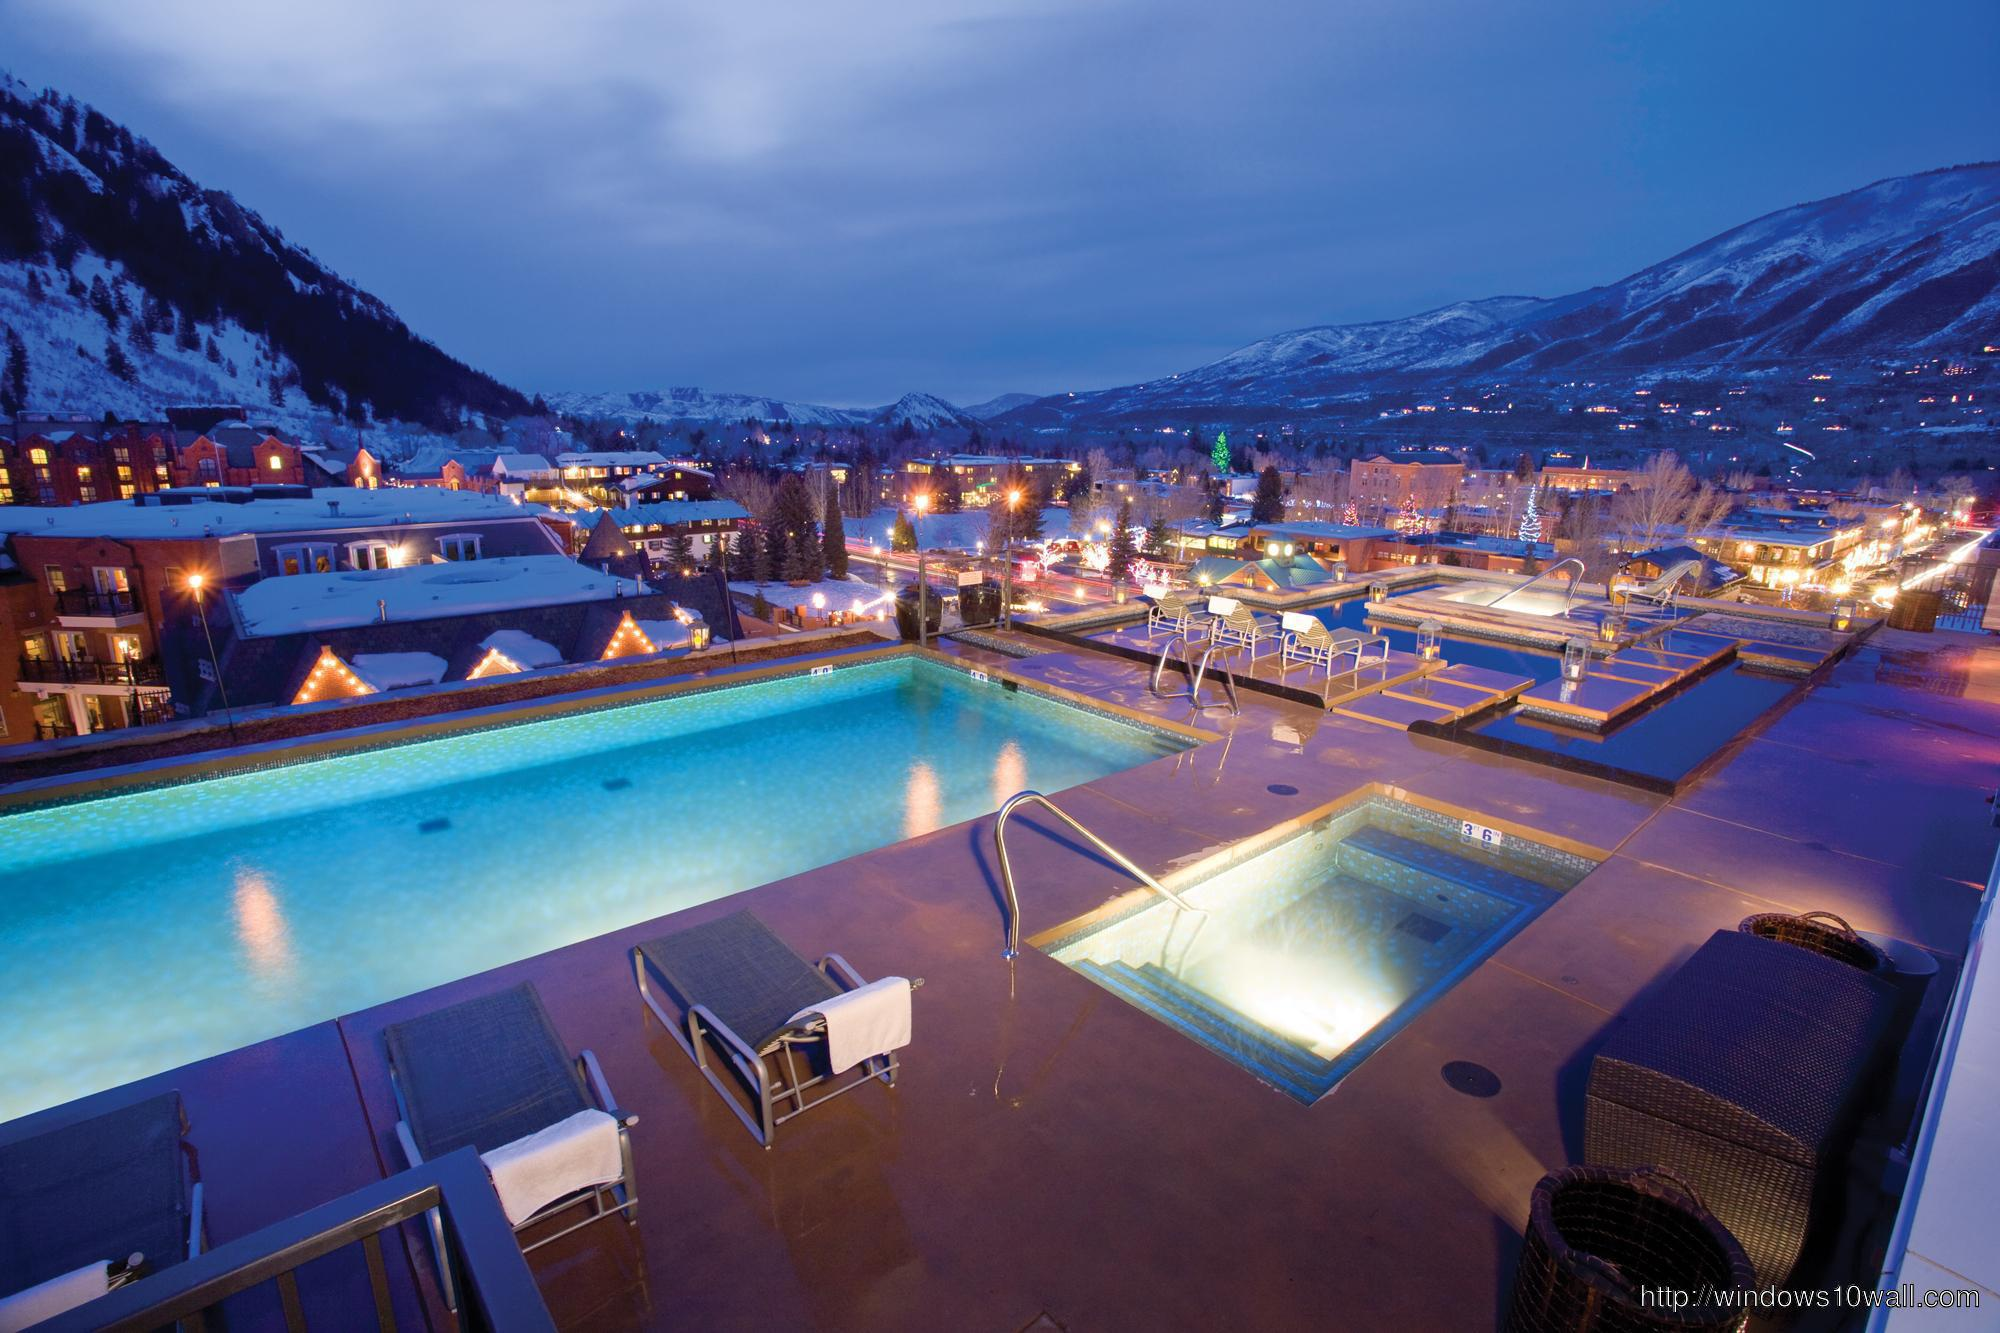 aspen-colorado-hotels-5-star-travel-wallpaper